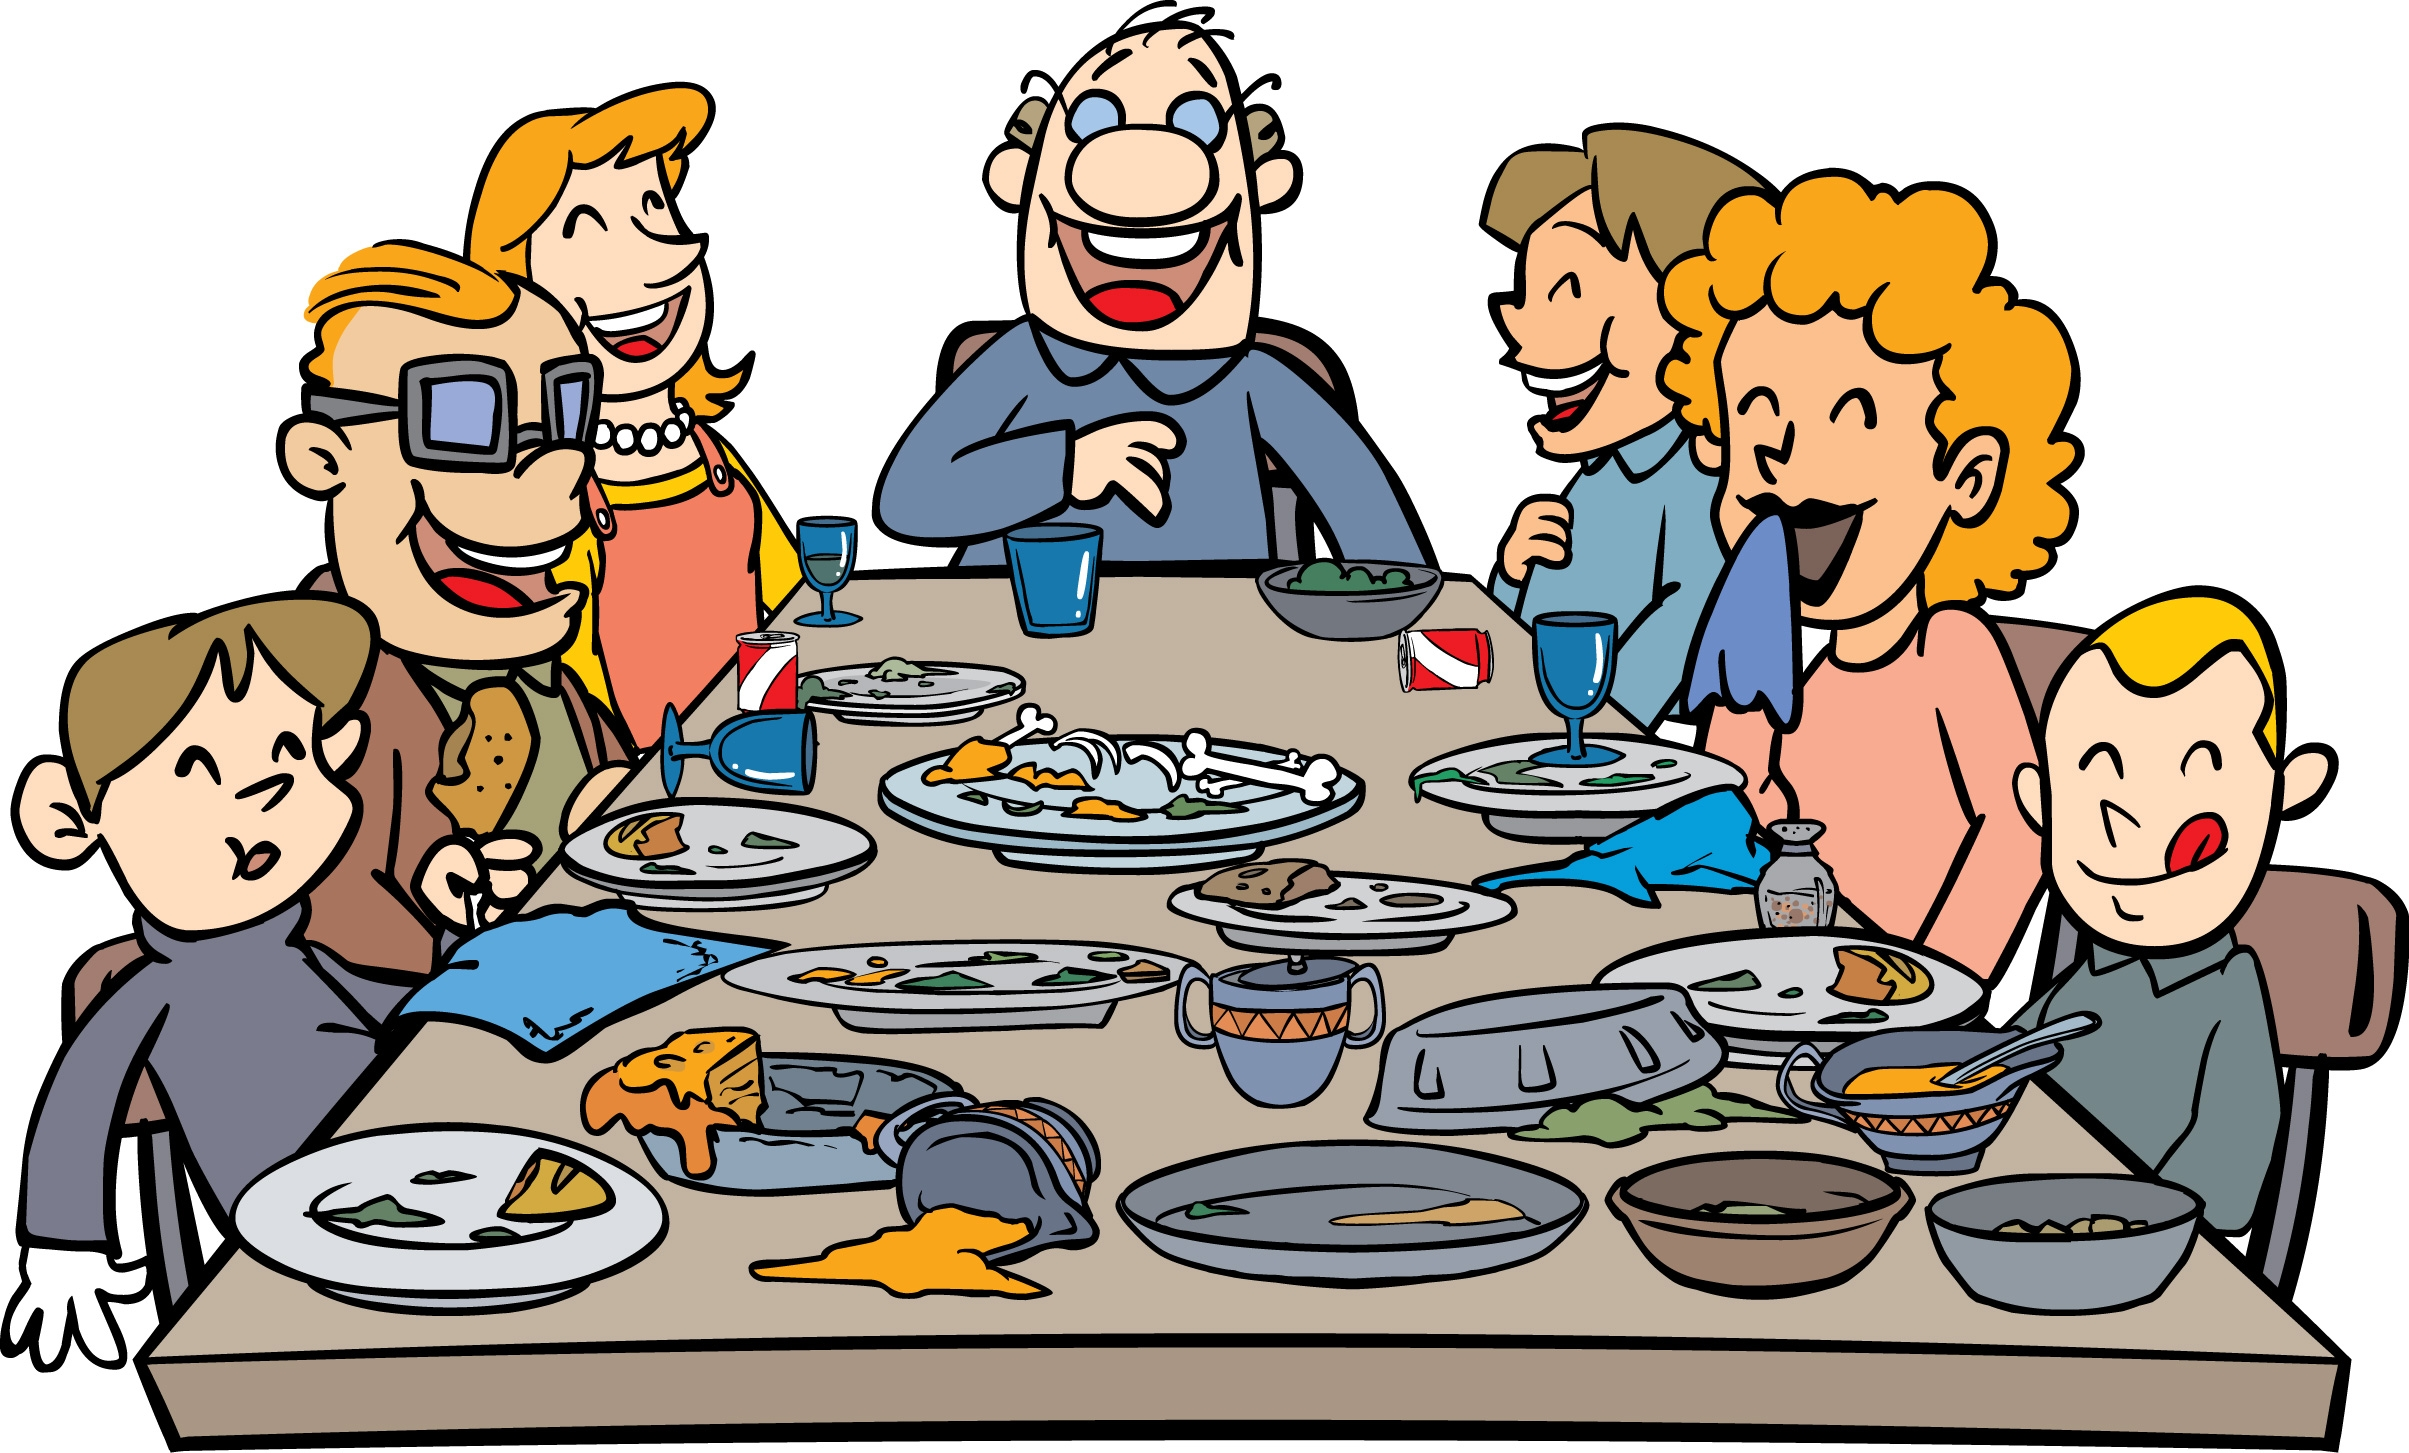 Pastor clipart family meal.